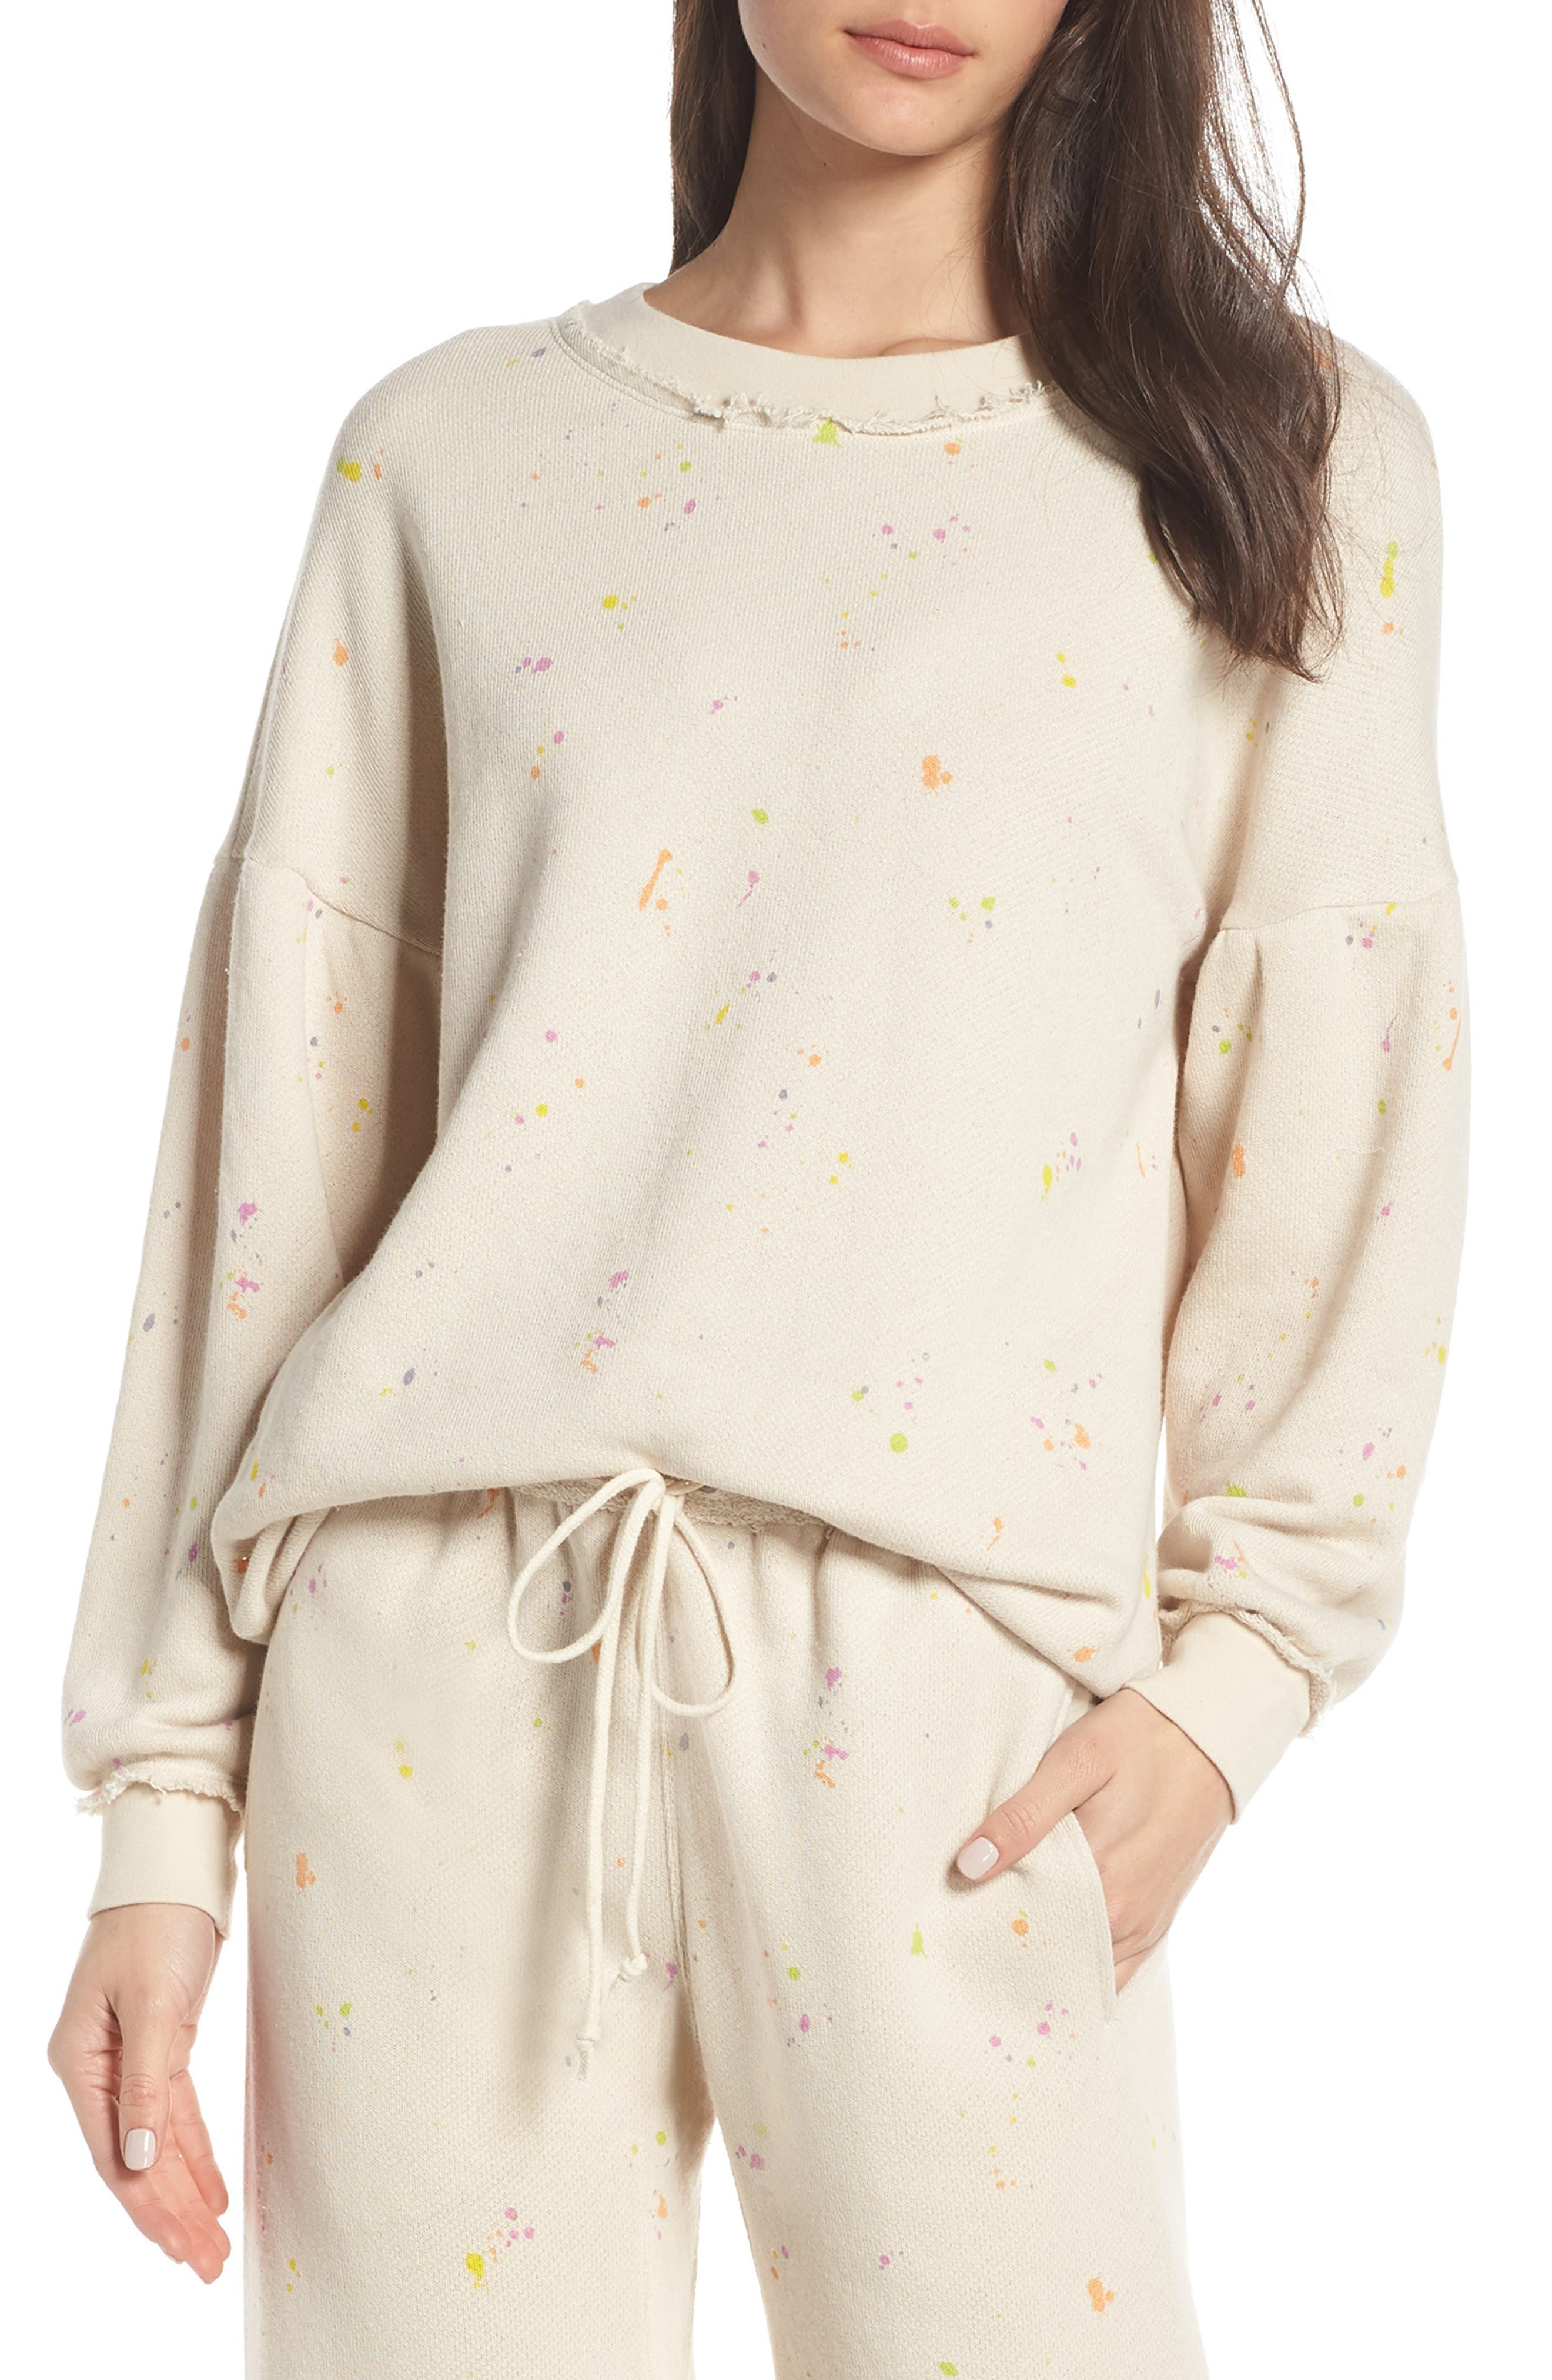 Make It Count Printed Sweatshirt by Free People Movement